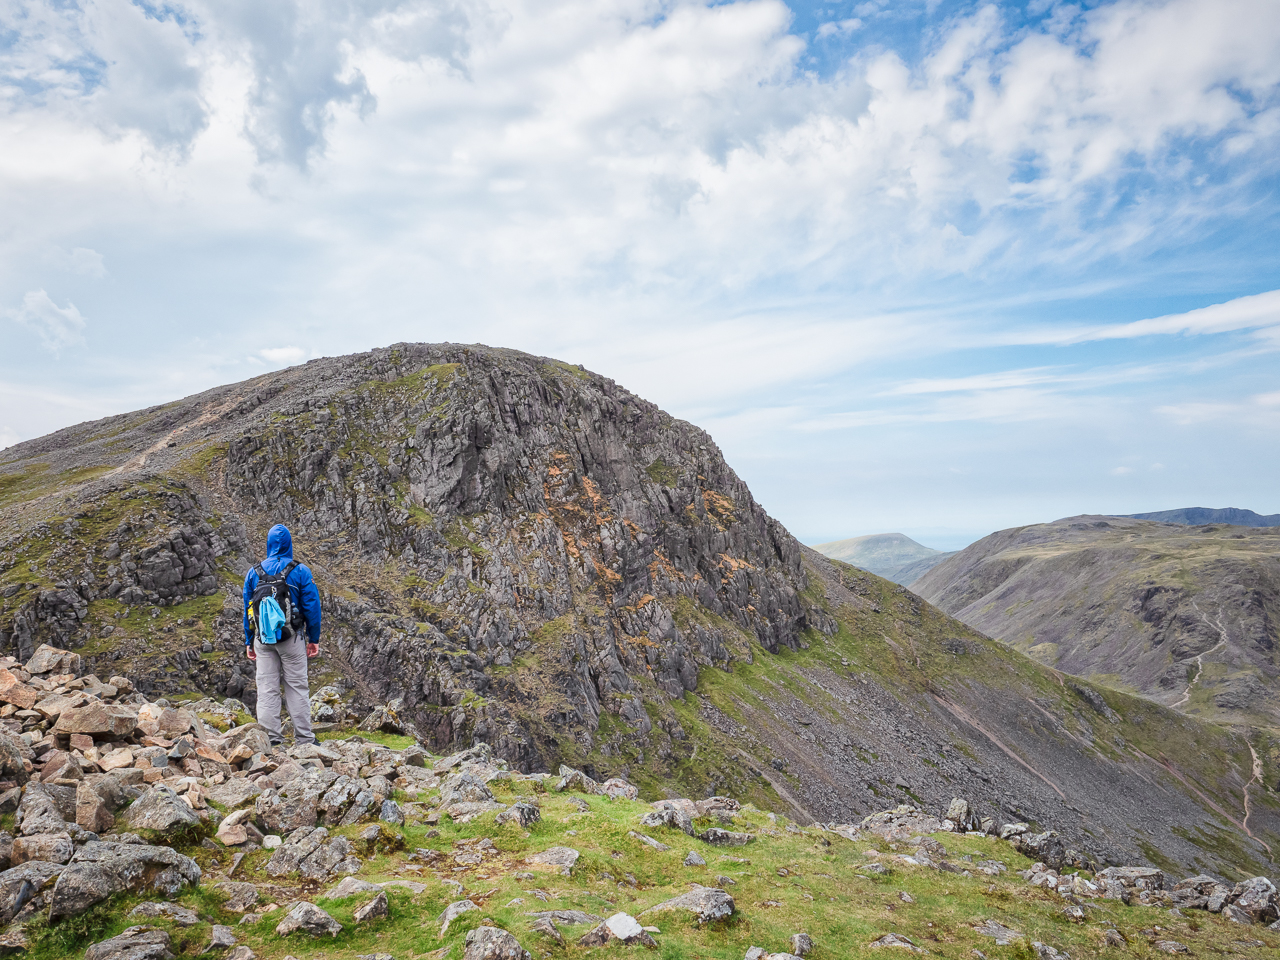 Travel photography England: A walker looks ahead to the mountain summit of Great Gable from Windy Gap in the Lake District, Cumbria, England.